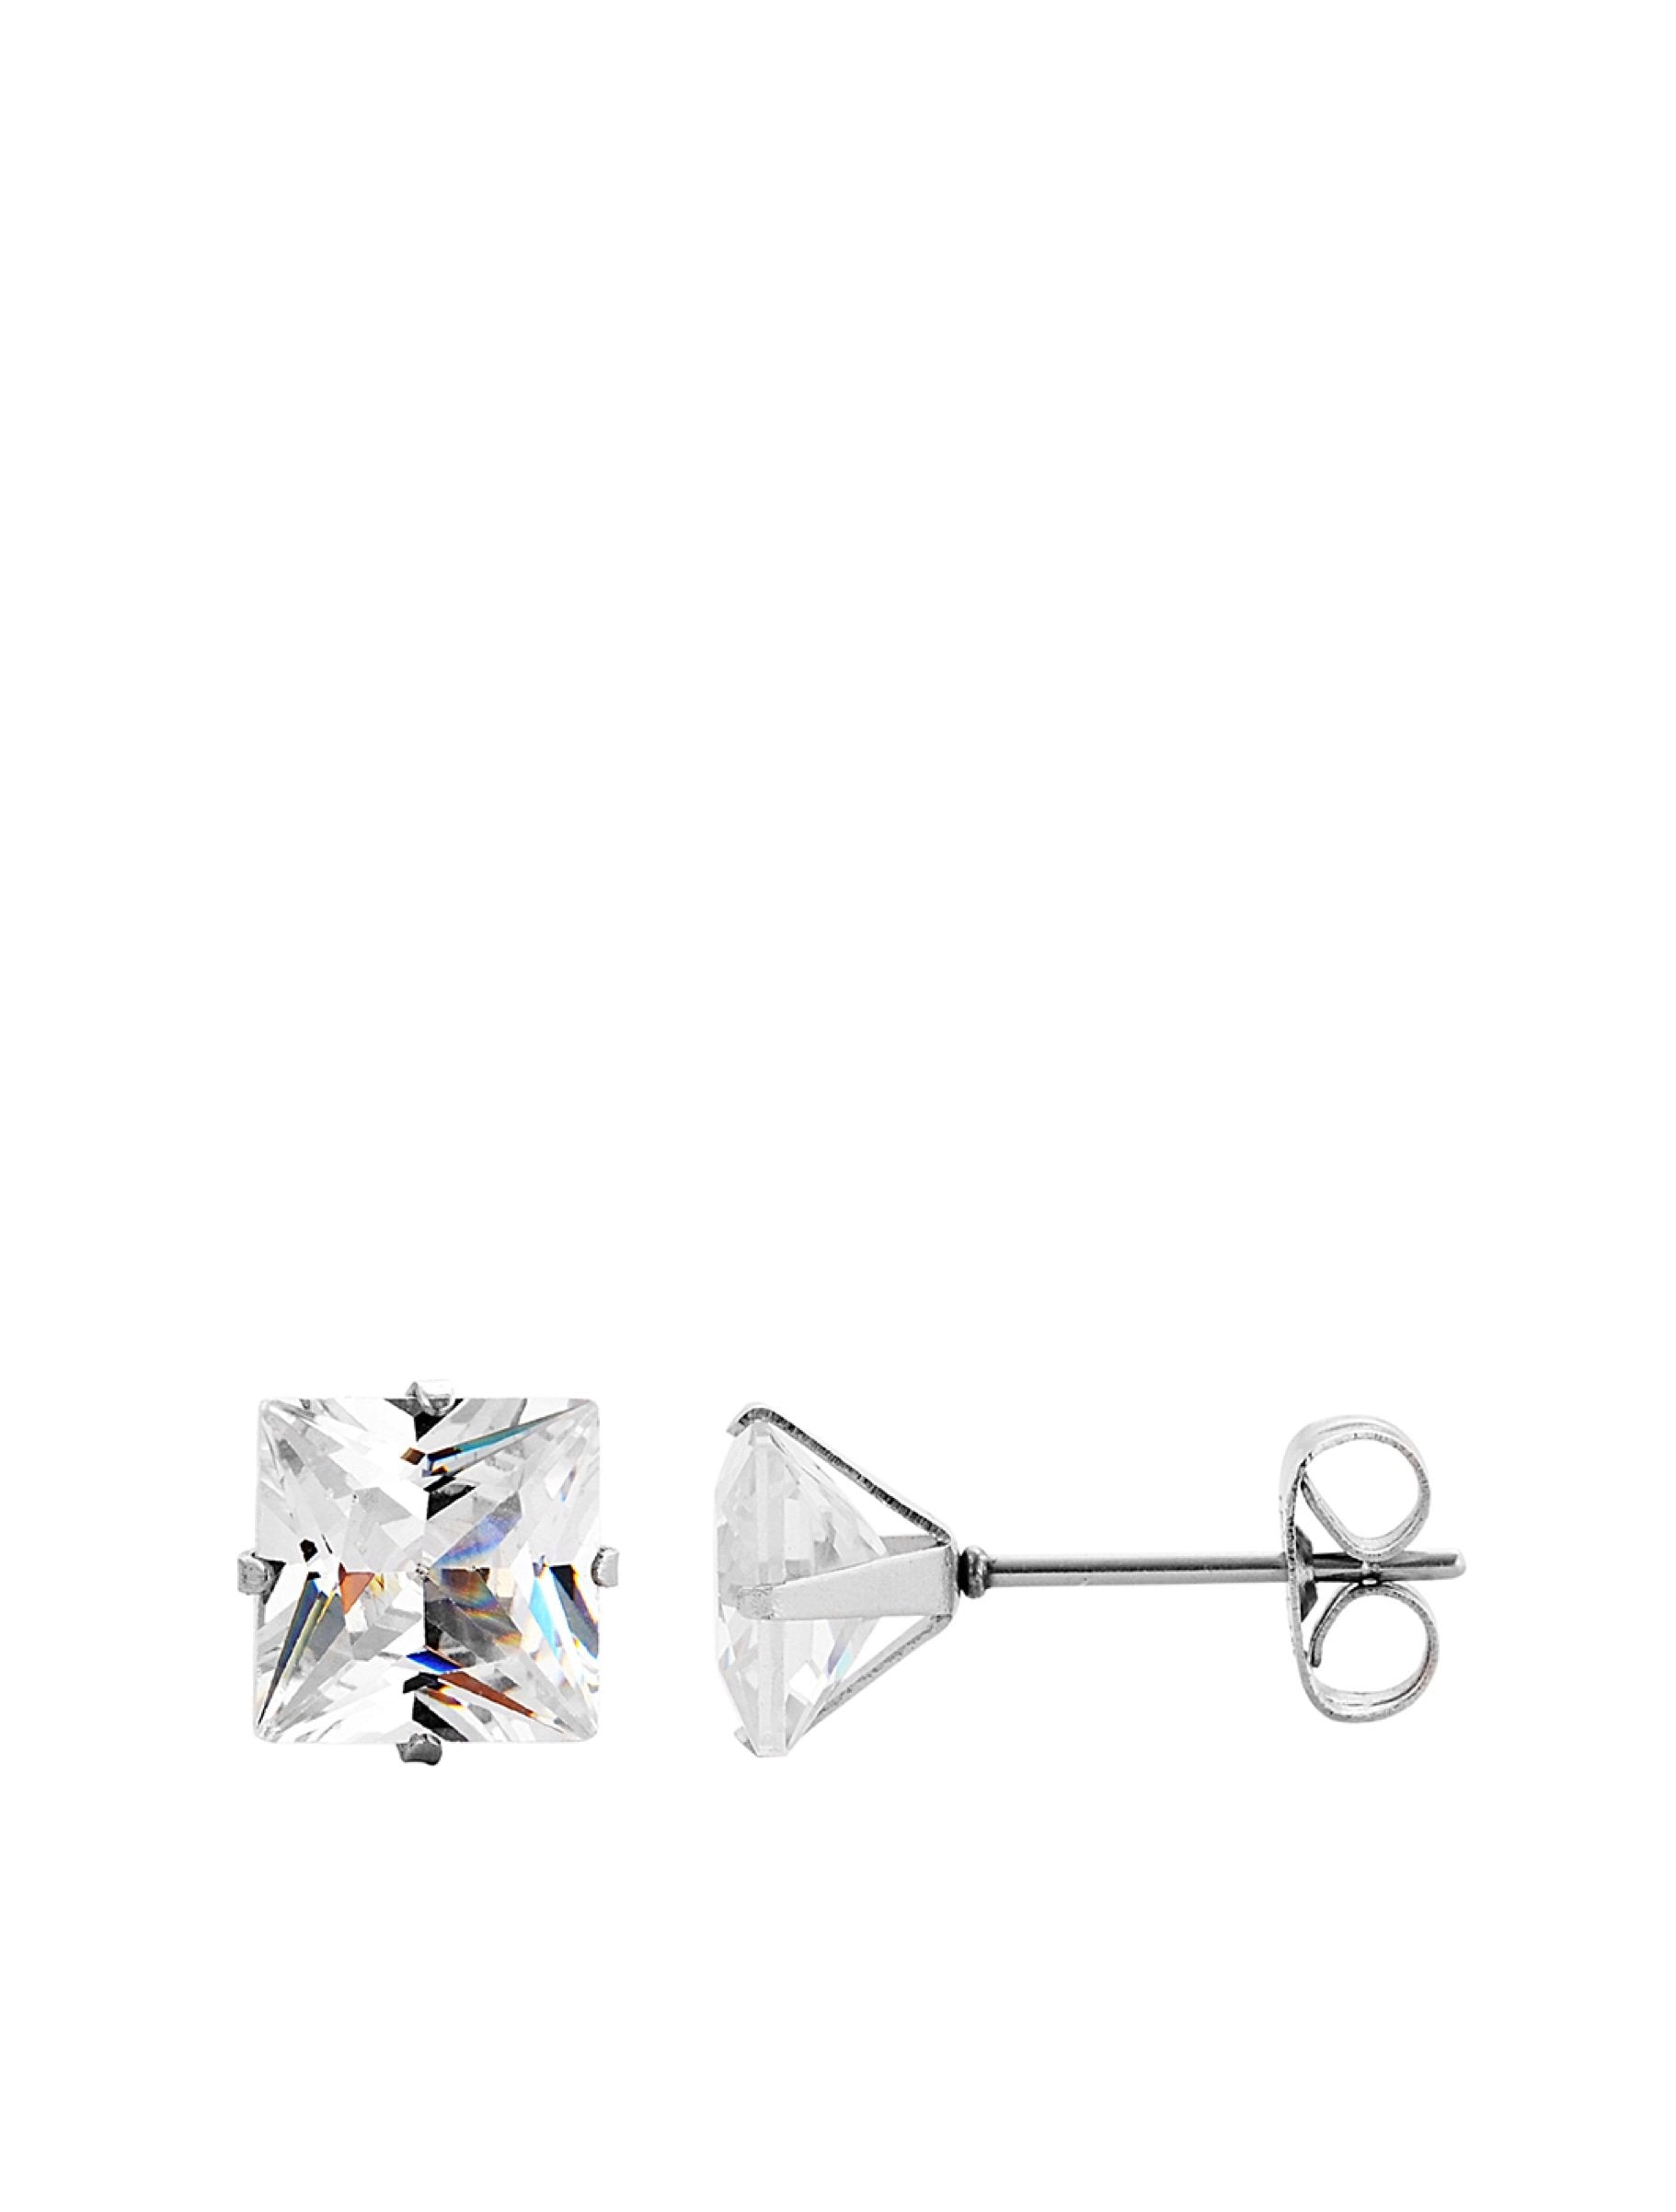 Silver Cz Square Stud Earrings